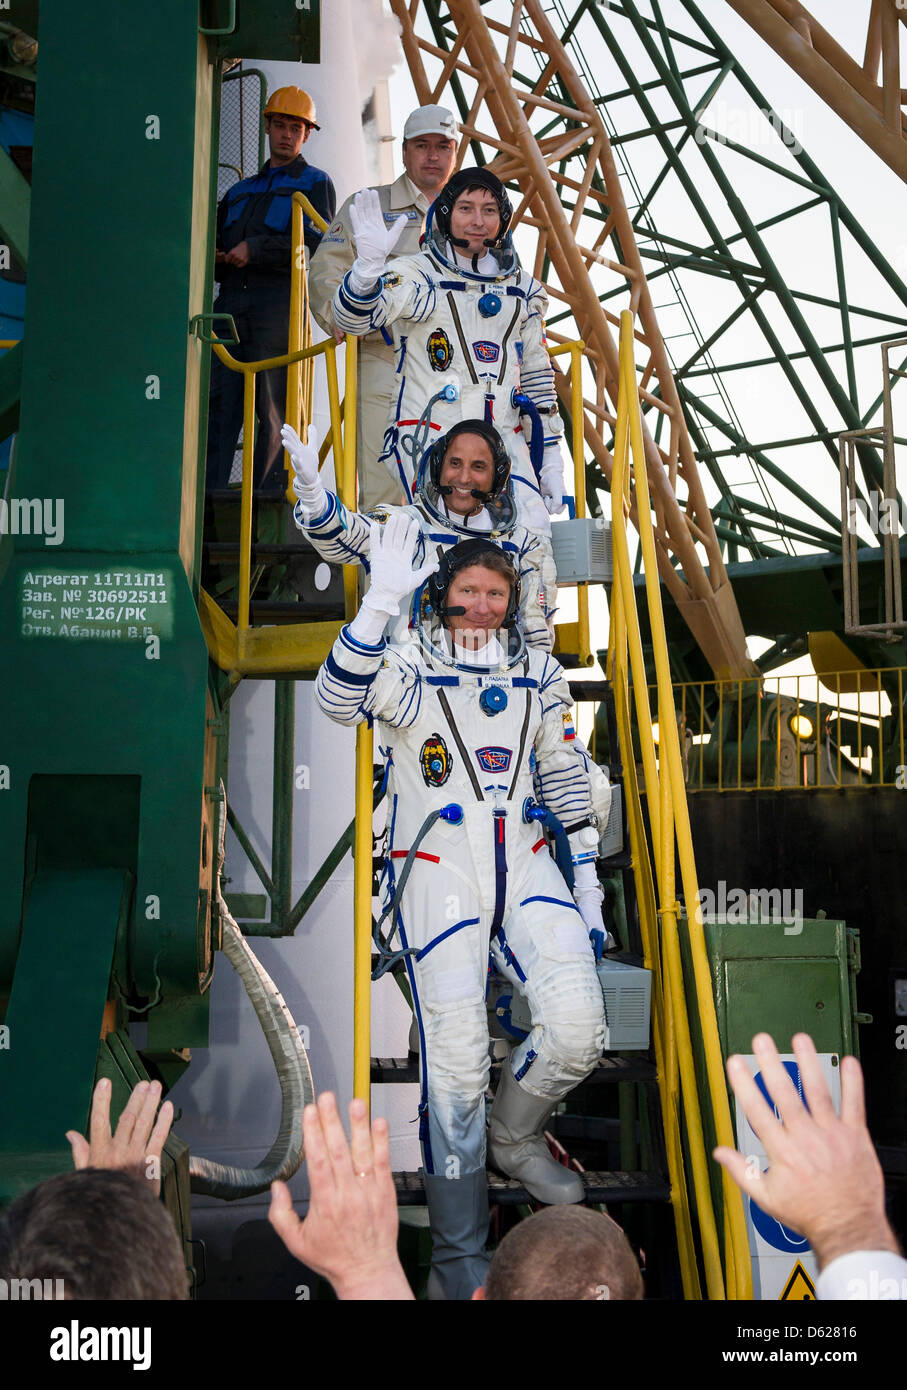 Expedition 31 Soyuz Commander Gennady Pedalka, bottom, NASA Flight Engineer Joseph Acaba and Flight Engineer Sergei - Stock Image